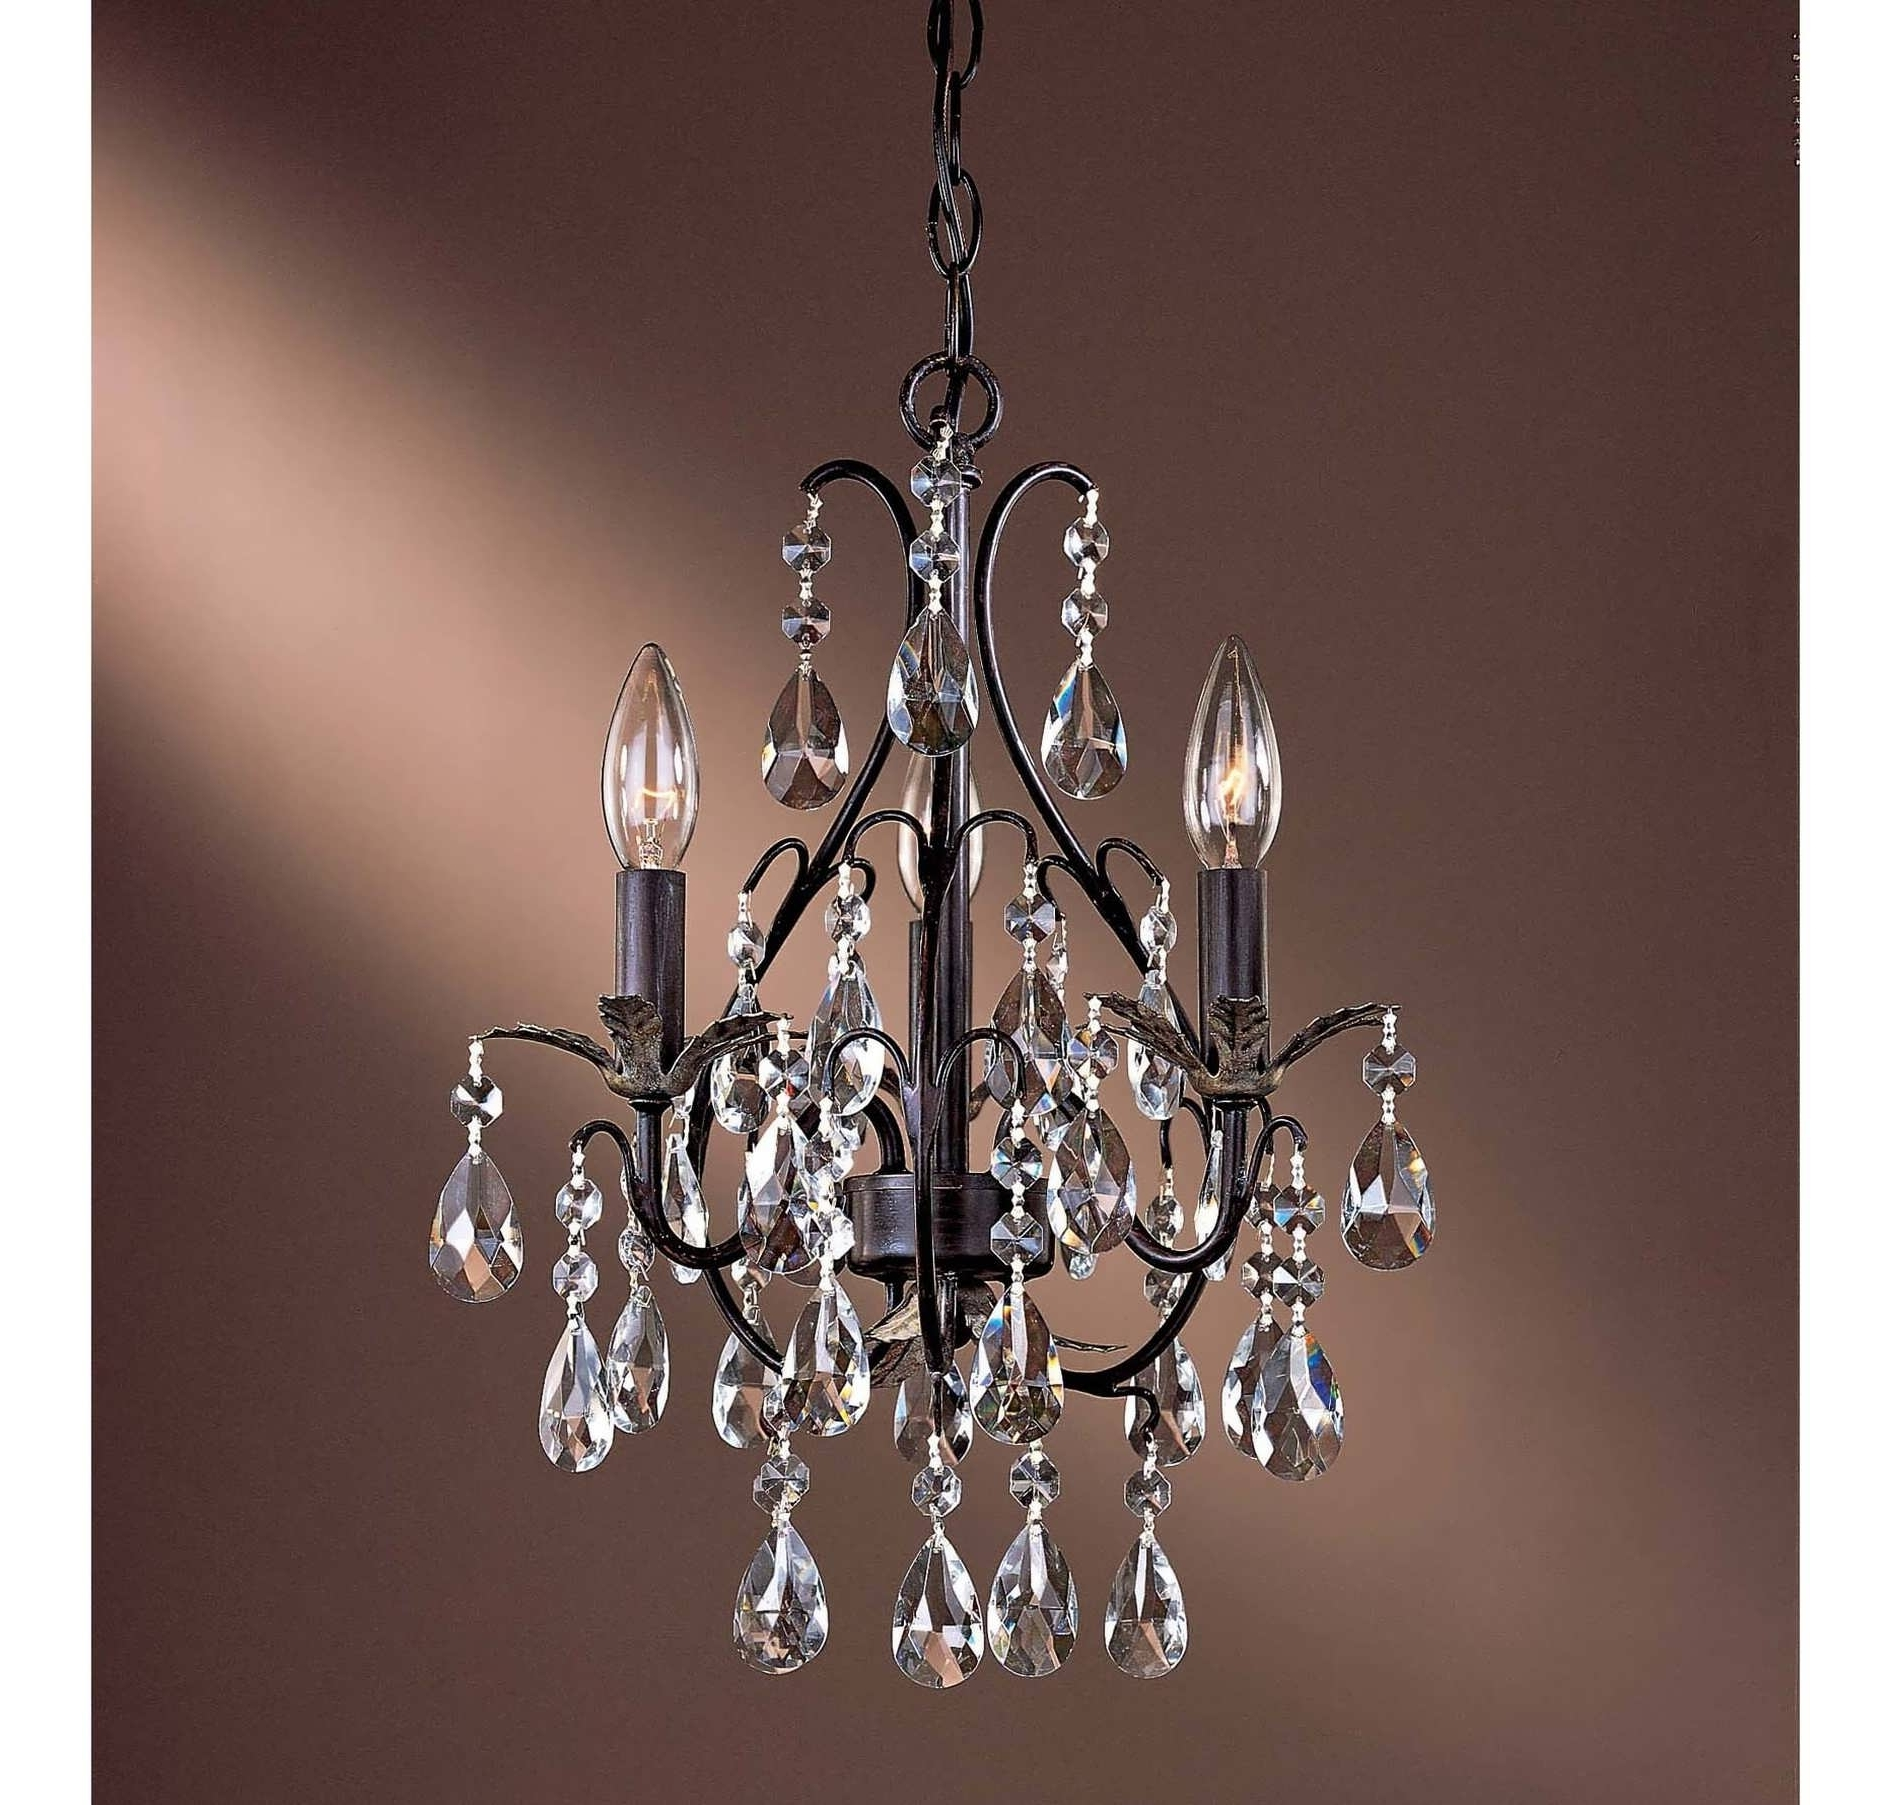 2018 Bathroom Chandeliers Sale Pertaining To Light : Rustic Chandeliers Crystal (View 1 of 20)